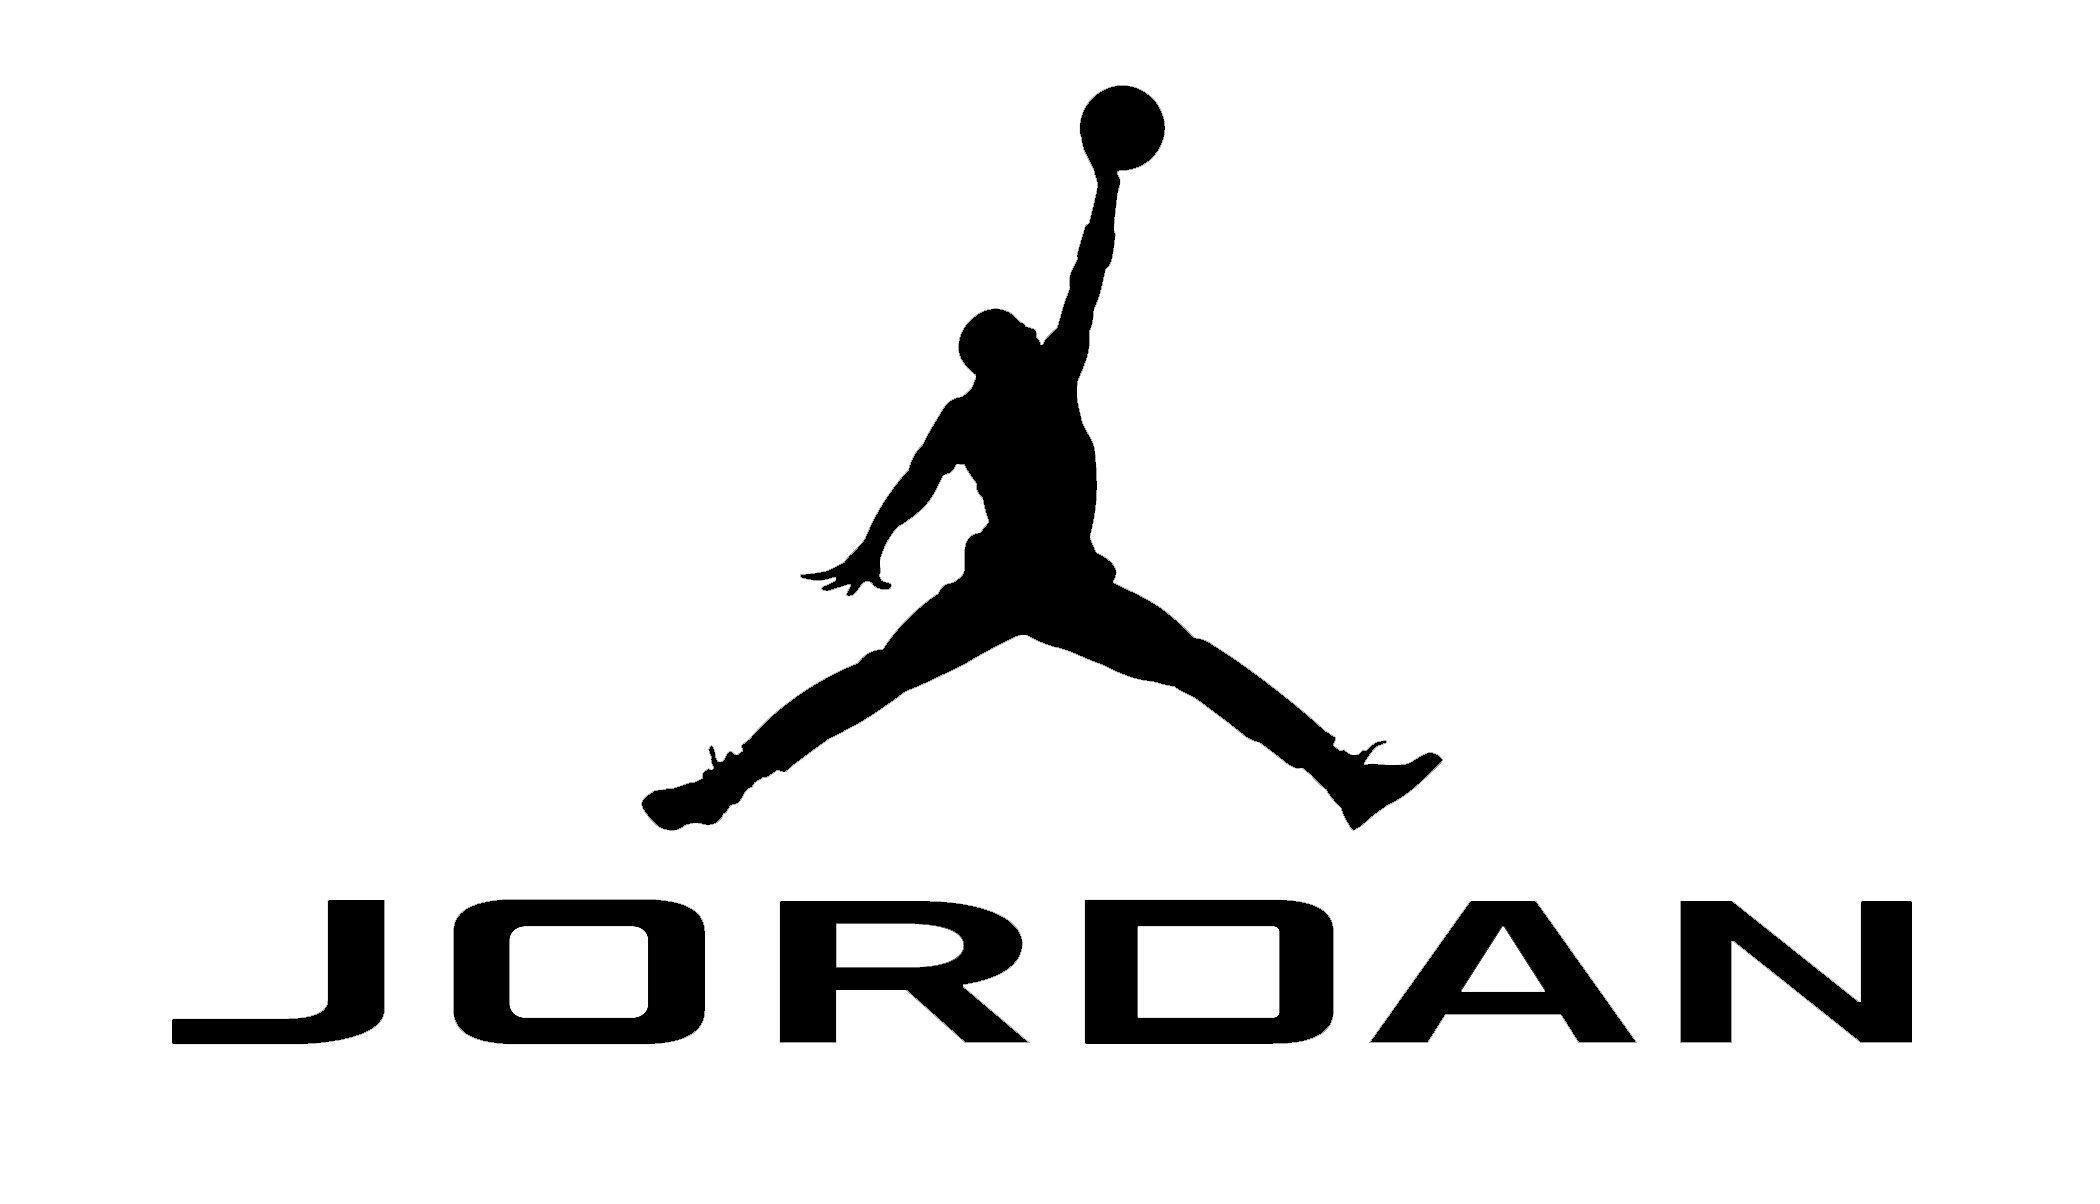 Jordan Logo Wallpaper For Iphone